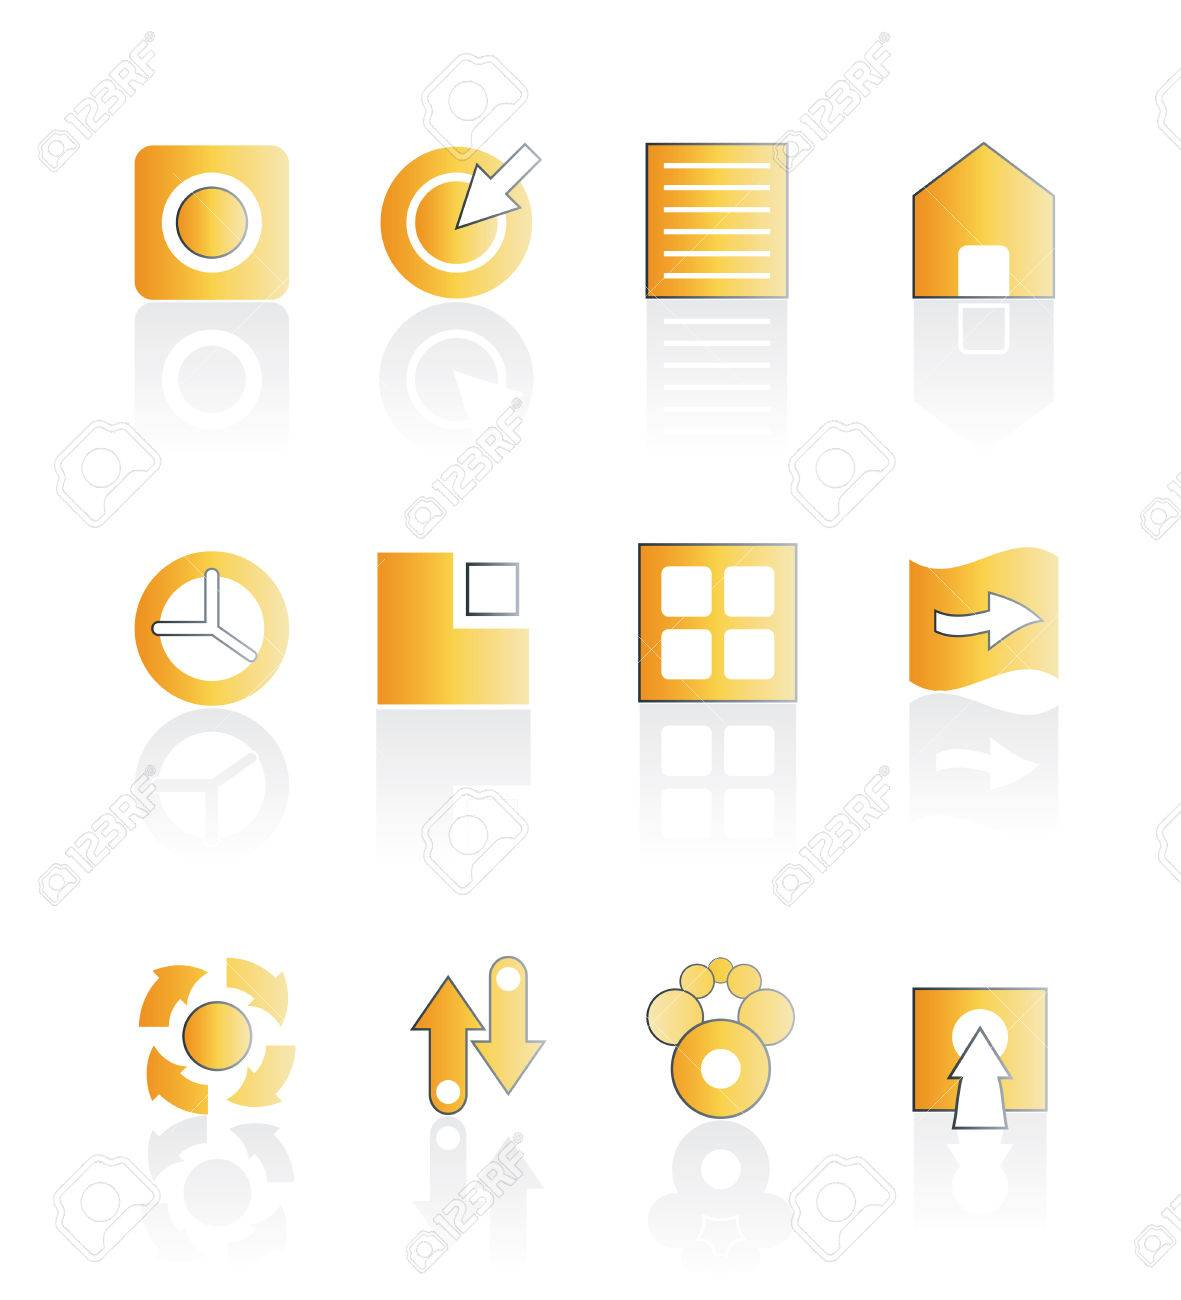 Vector illustration of asorted web icons in orange color with shadow. Stylized and modern. Easily editable. Stock Vector - 2901317